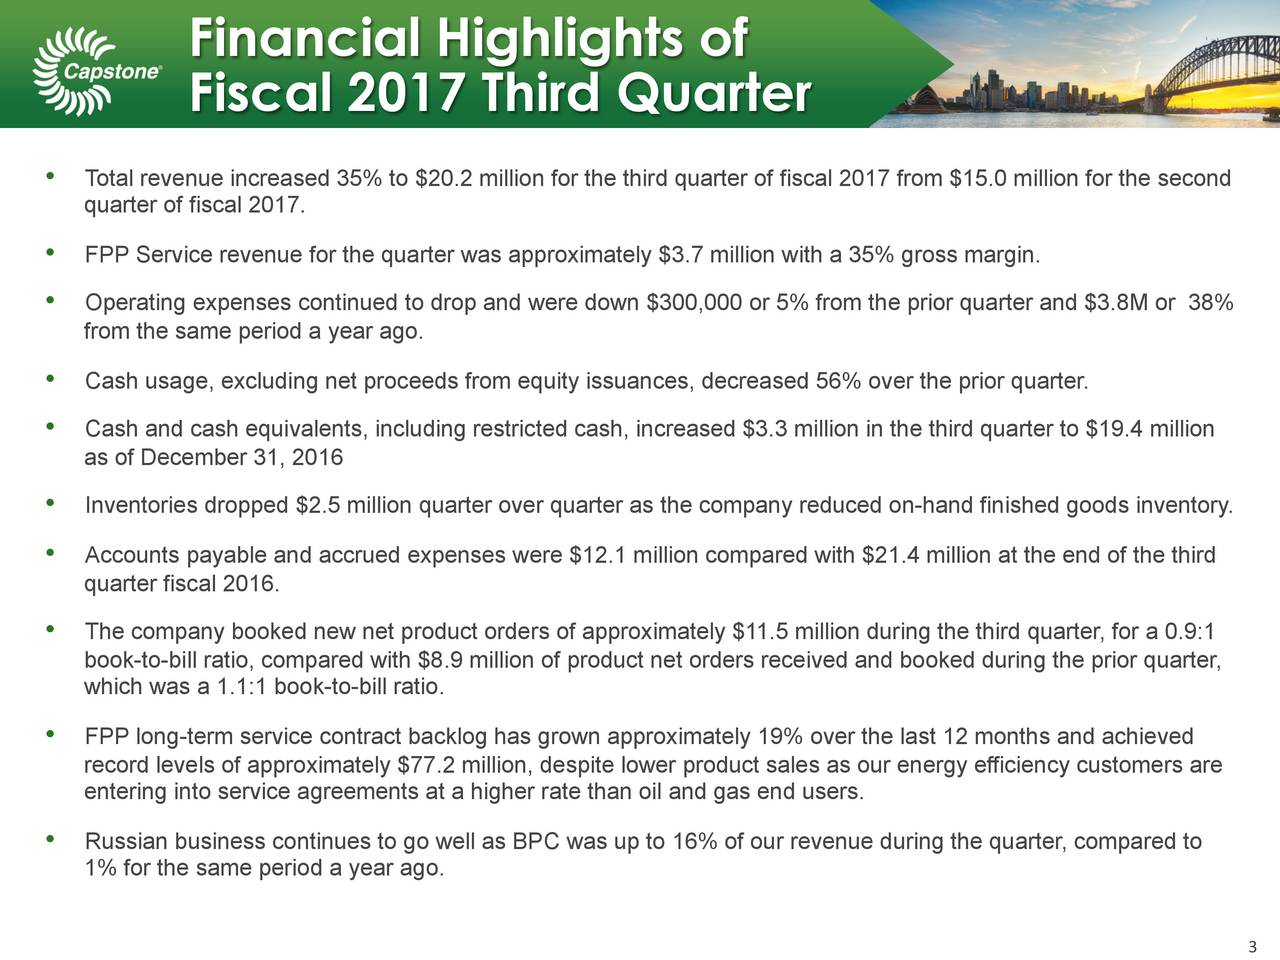 Fiscal 2017 Third Quarter Total revenue increased 35% to $20.2 million for the third quarter of fiscal 2017 from $15.0 million for the second quarter of fiscal 2017. FPP Service revenue for the quarter was approximately $3.7 million with a 35% gross margin. Operating expenses continued to drop and were down $300,000 or 5% from the prior quarter and $3.8M or 38% from the same period a year ago. Cash usage, excluding net proceeds from equity issuances, decreased 56% over the prior quarter. Cash and cash equivalents, including restricted cash, increased $3.3 million in the third quarter to $19.4 million as of December 31, 2016 Inventories dropped $2.5 million quarter over quarter as the company reduced on-hand finished goods inventory. Accounts payable and accrued expenses were $12.1 million compared with $21.4 million at the end of the third quarter fiscal 2016. The company booked new net product orders of approximately $11.5 million during the third quarter, for a 0.9:1 book-to-bill ratio, compared with $8.9 million of product net orders received and booked during the prior quarter, which was a 1.1:1 book-to-bill ratio. FPP long-term service contract backlog has grown approximately 19% over the last 12 months and achieved record levels of approximately $77.2 million, despite lower product sales as our energy efficiency customers are entering into service agreements at a higher rate than oil and gas end users. Russian business continues to go well as BPC was up to 16% of our revenue during the quarter, compared to 1% for the same period a year ago.